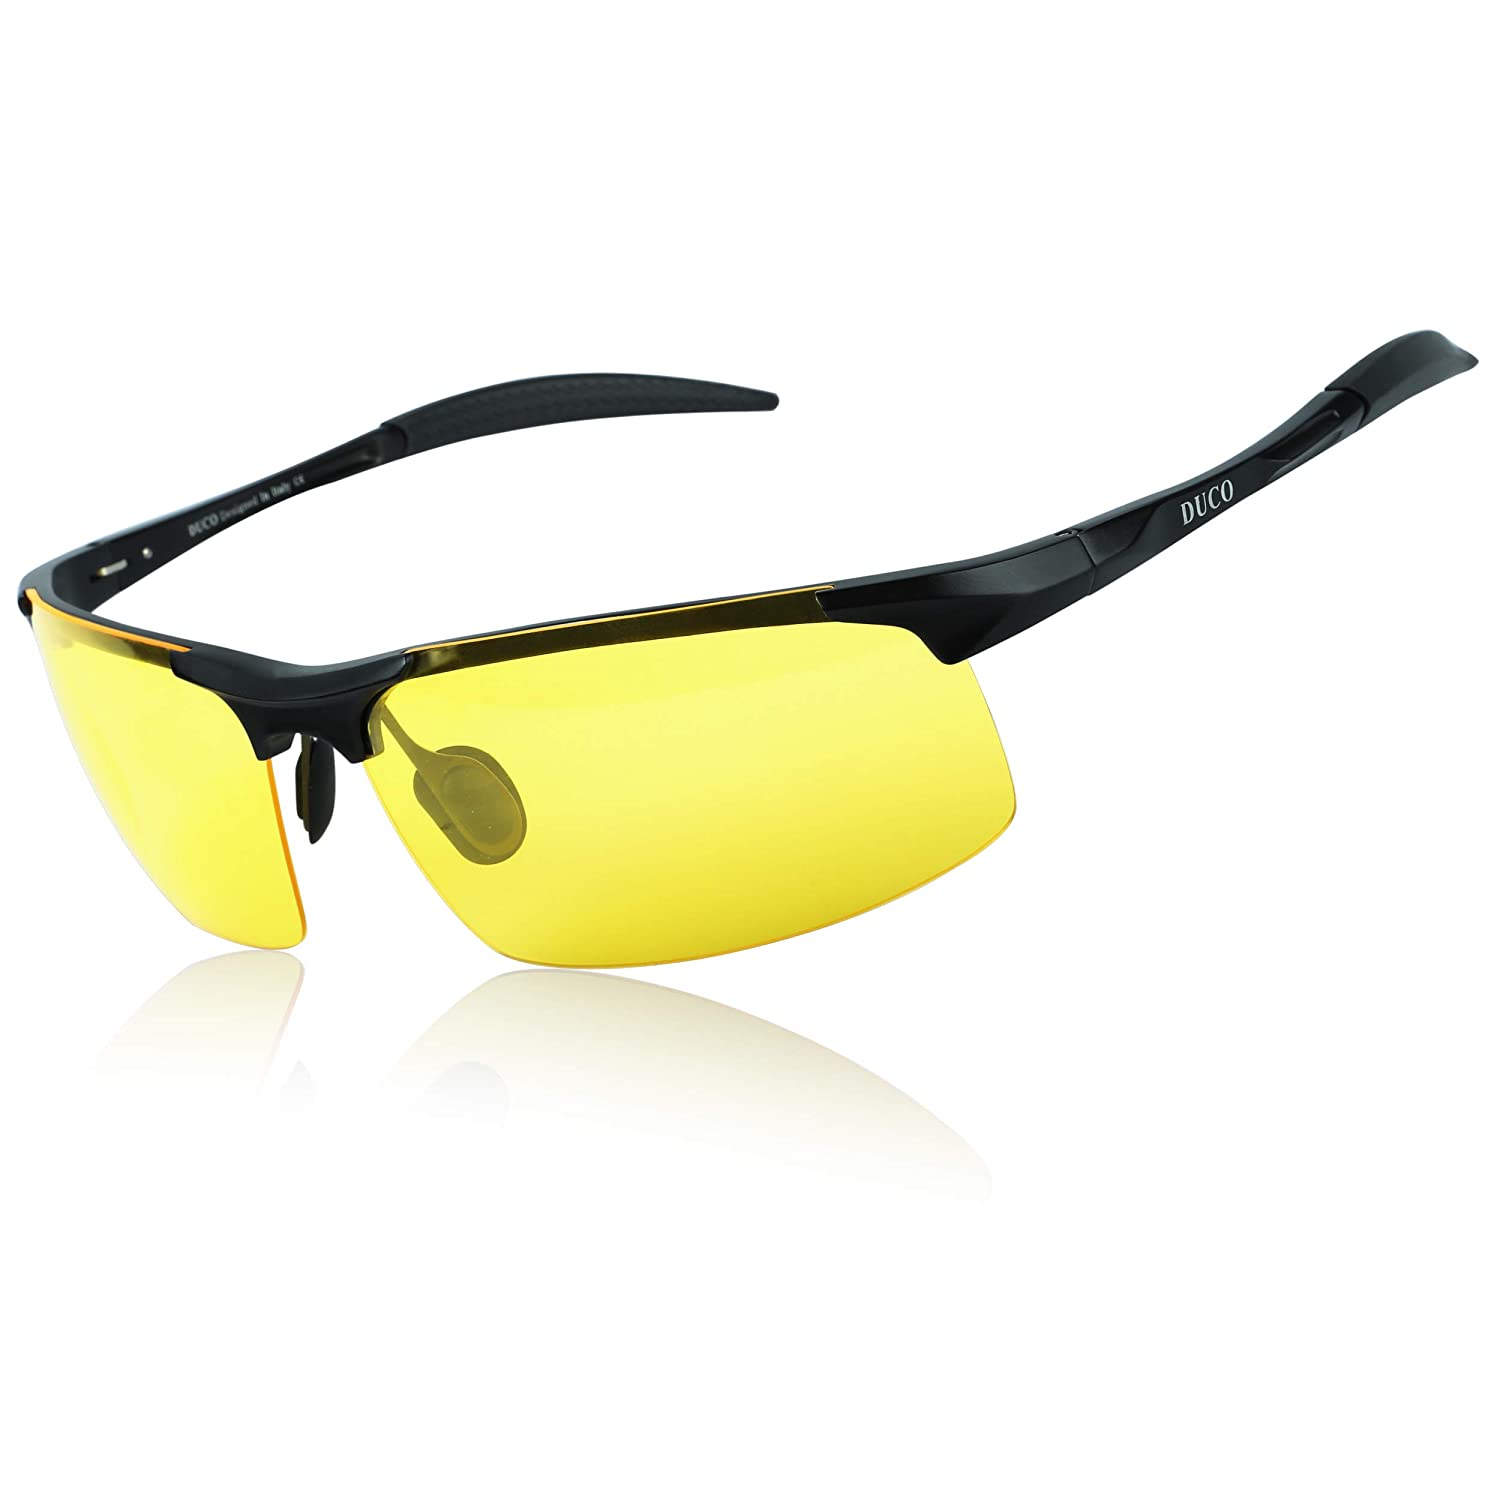 2518af89b7a Amazon.com  Duco Night-vision Glasses Polarized Night Driving Men s  Shooting Glasses 8177  Clothing